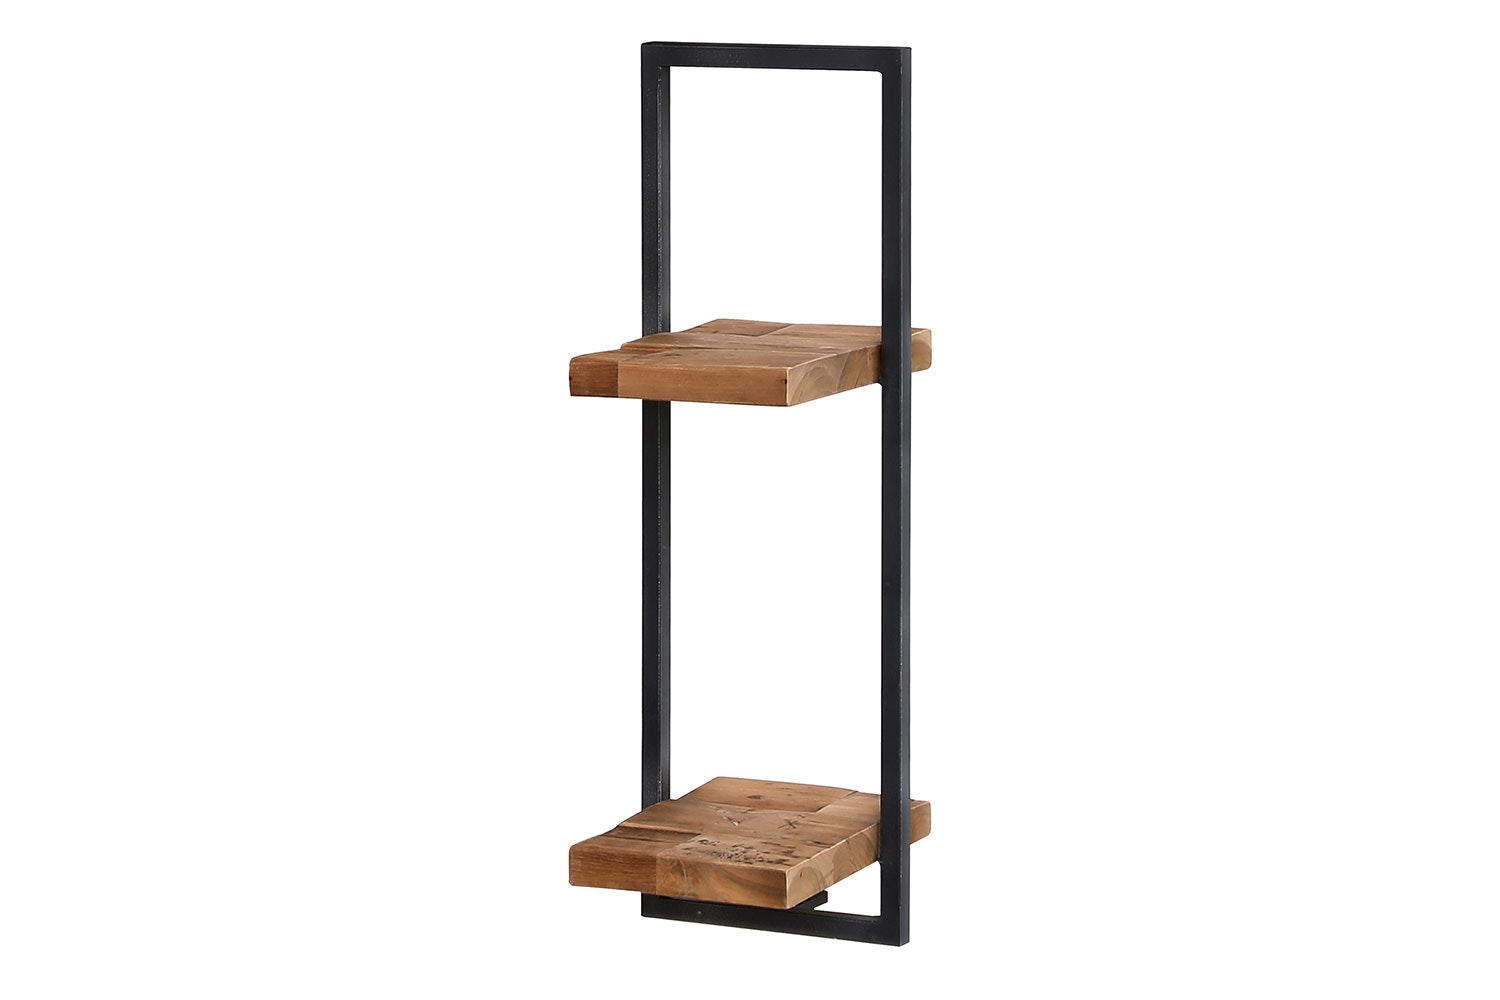 Shelfmate 25cm Matching Shelving Unit by D-Bodhi